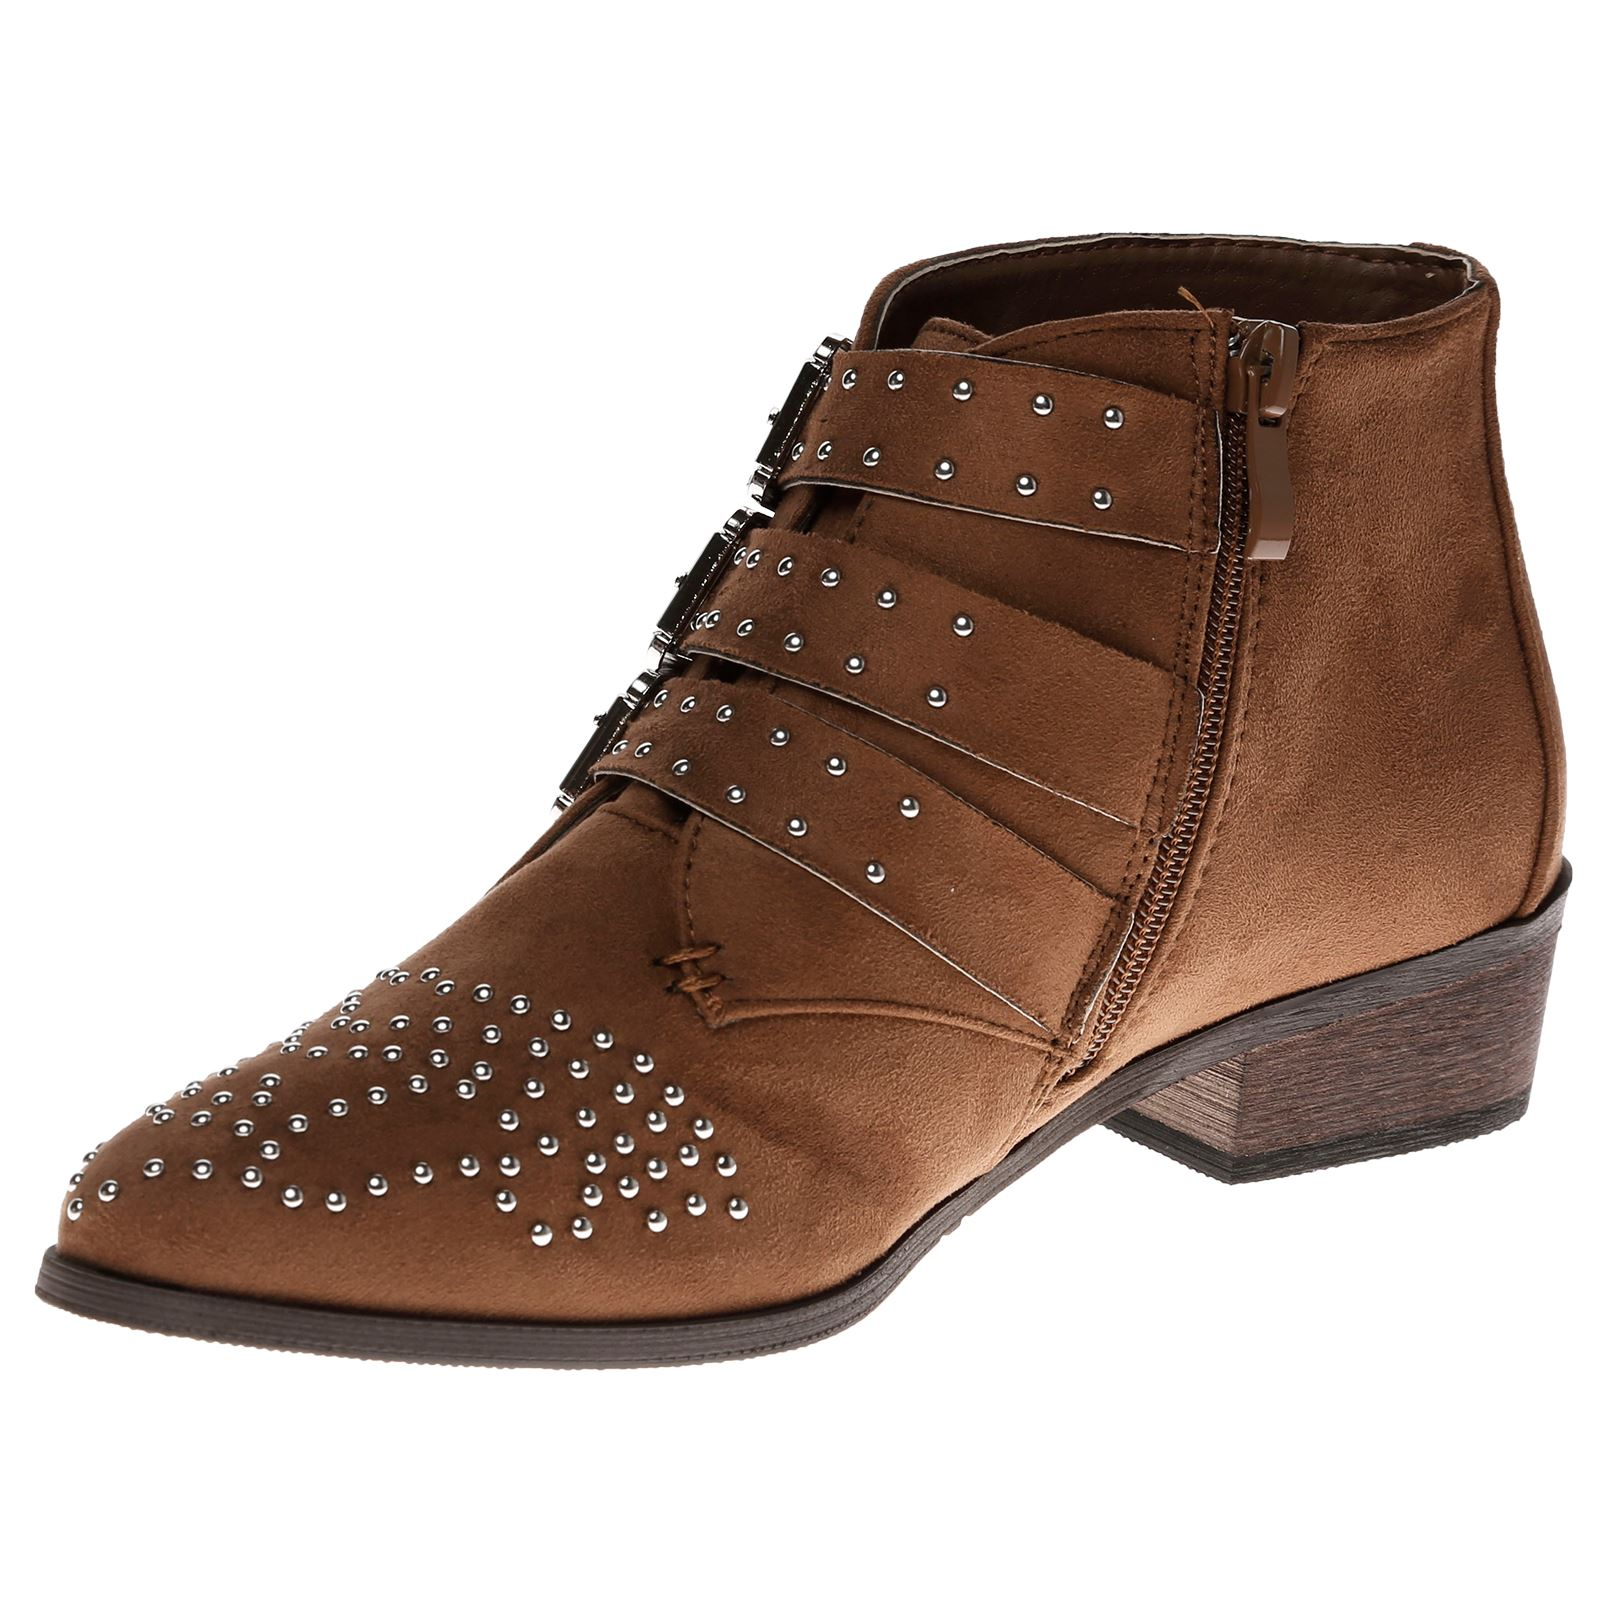 Liv-Womens-Flats-Low-Heels-Buckle-Strappy-Biker-Ankle-Boots-Ladies-Shoes-Studded thumbnail 16